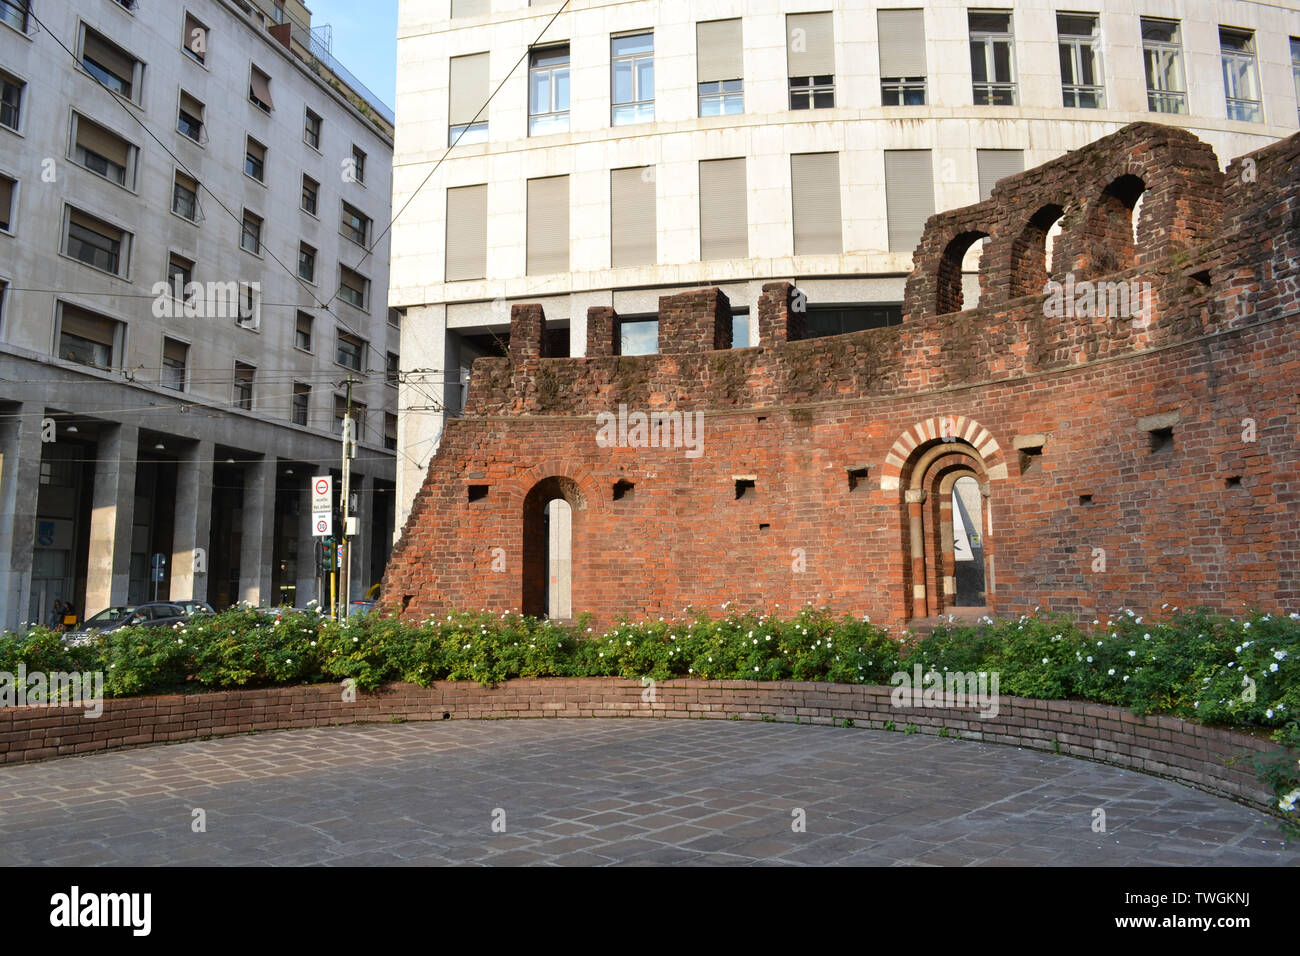 Milan/Italy - October 10, 2015: Red brick wall remained from the medieval cathedral San Giovanni in Conca in Milan. Stock Photo